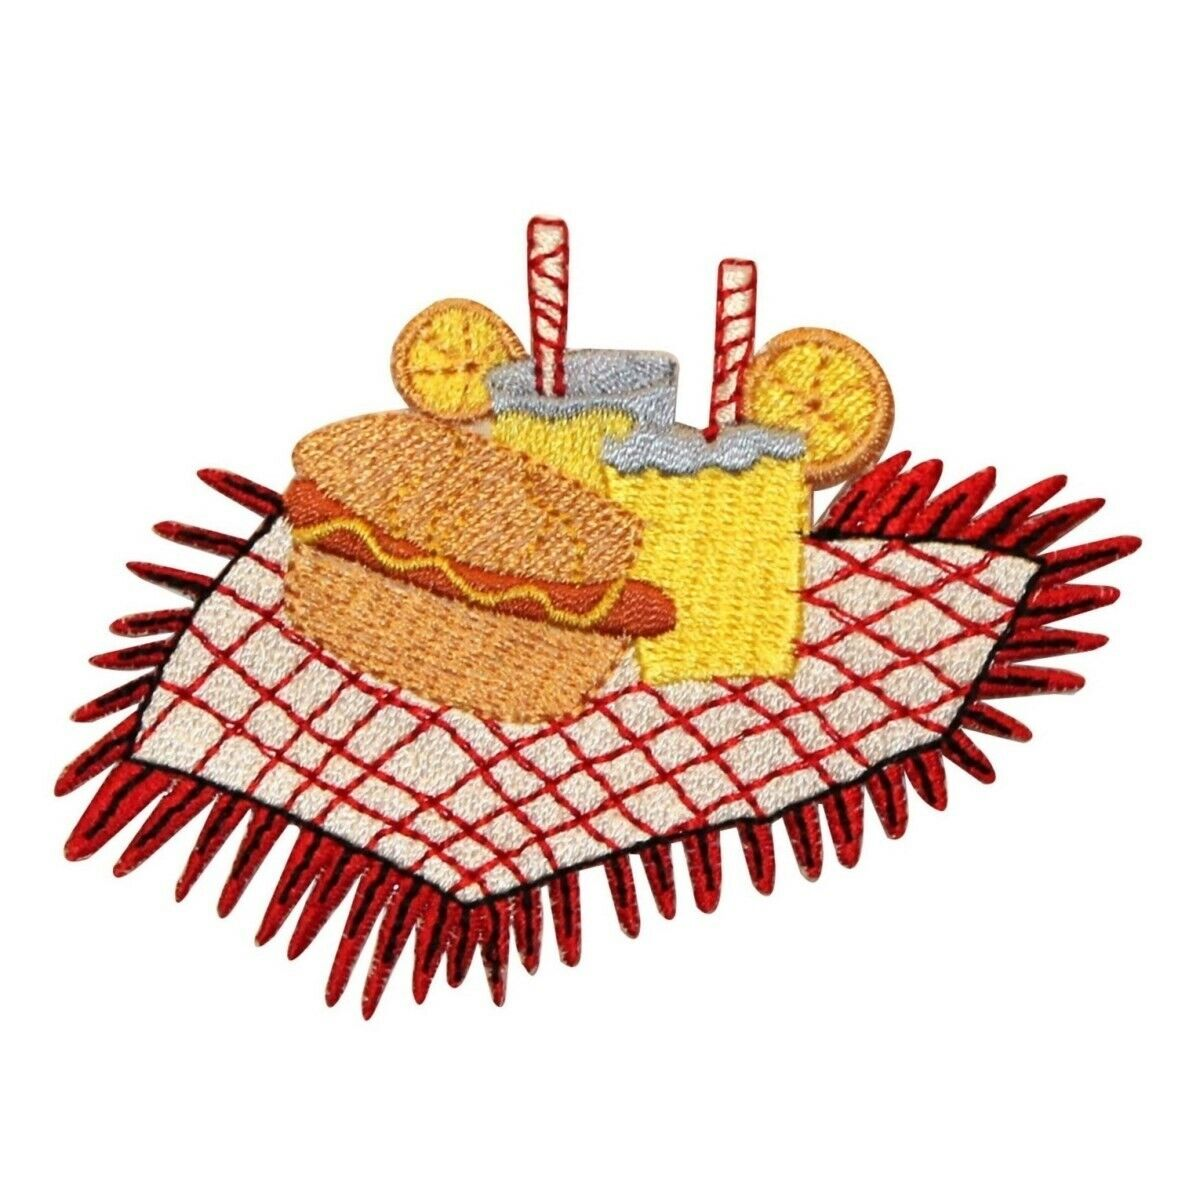 ID 1241 Picnic Blanket And Food Patch Summer Snack Embroider